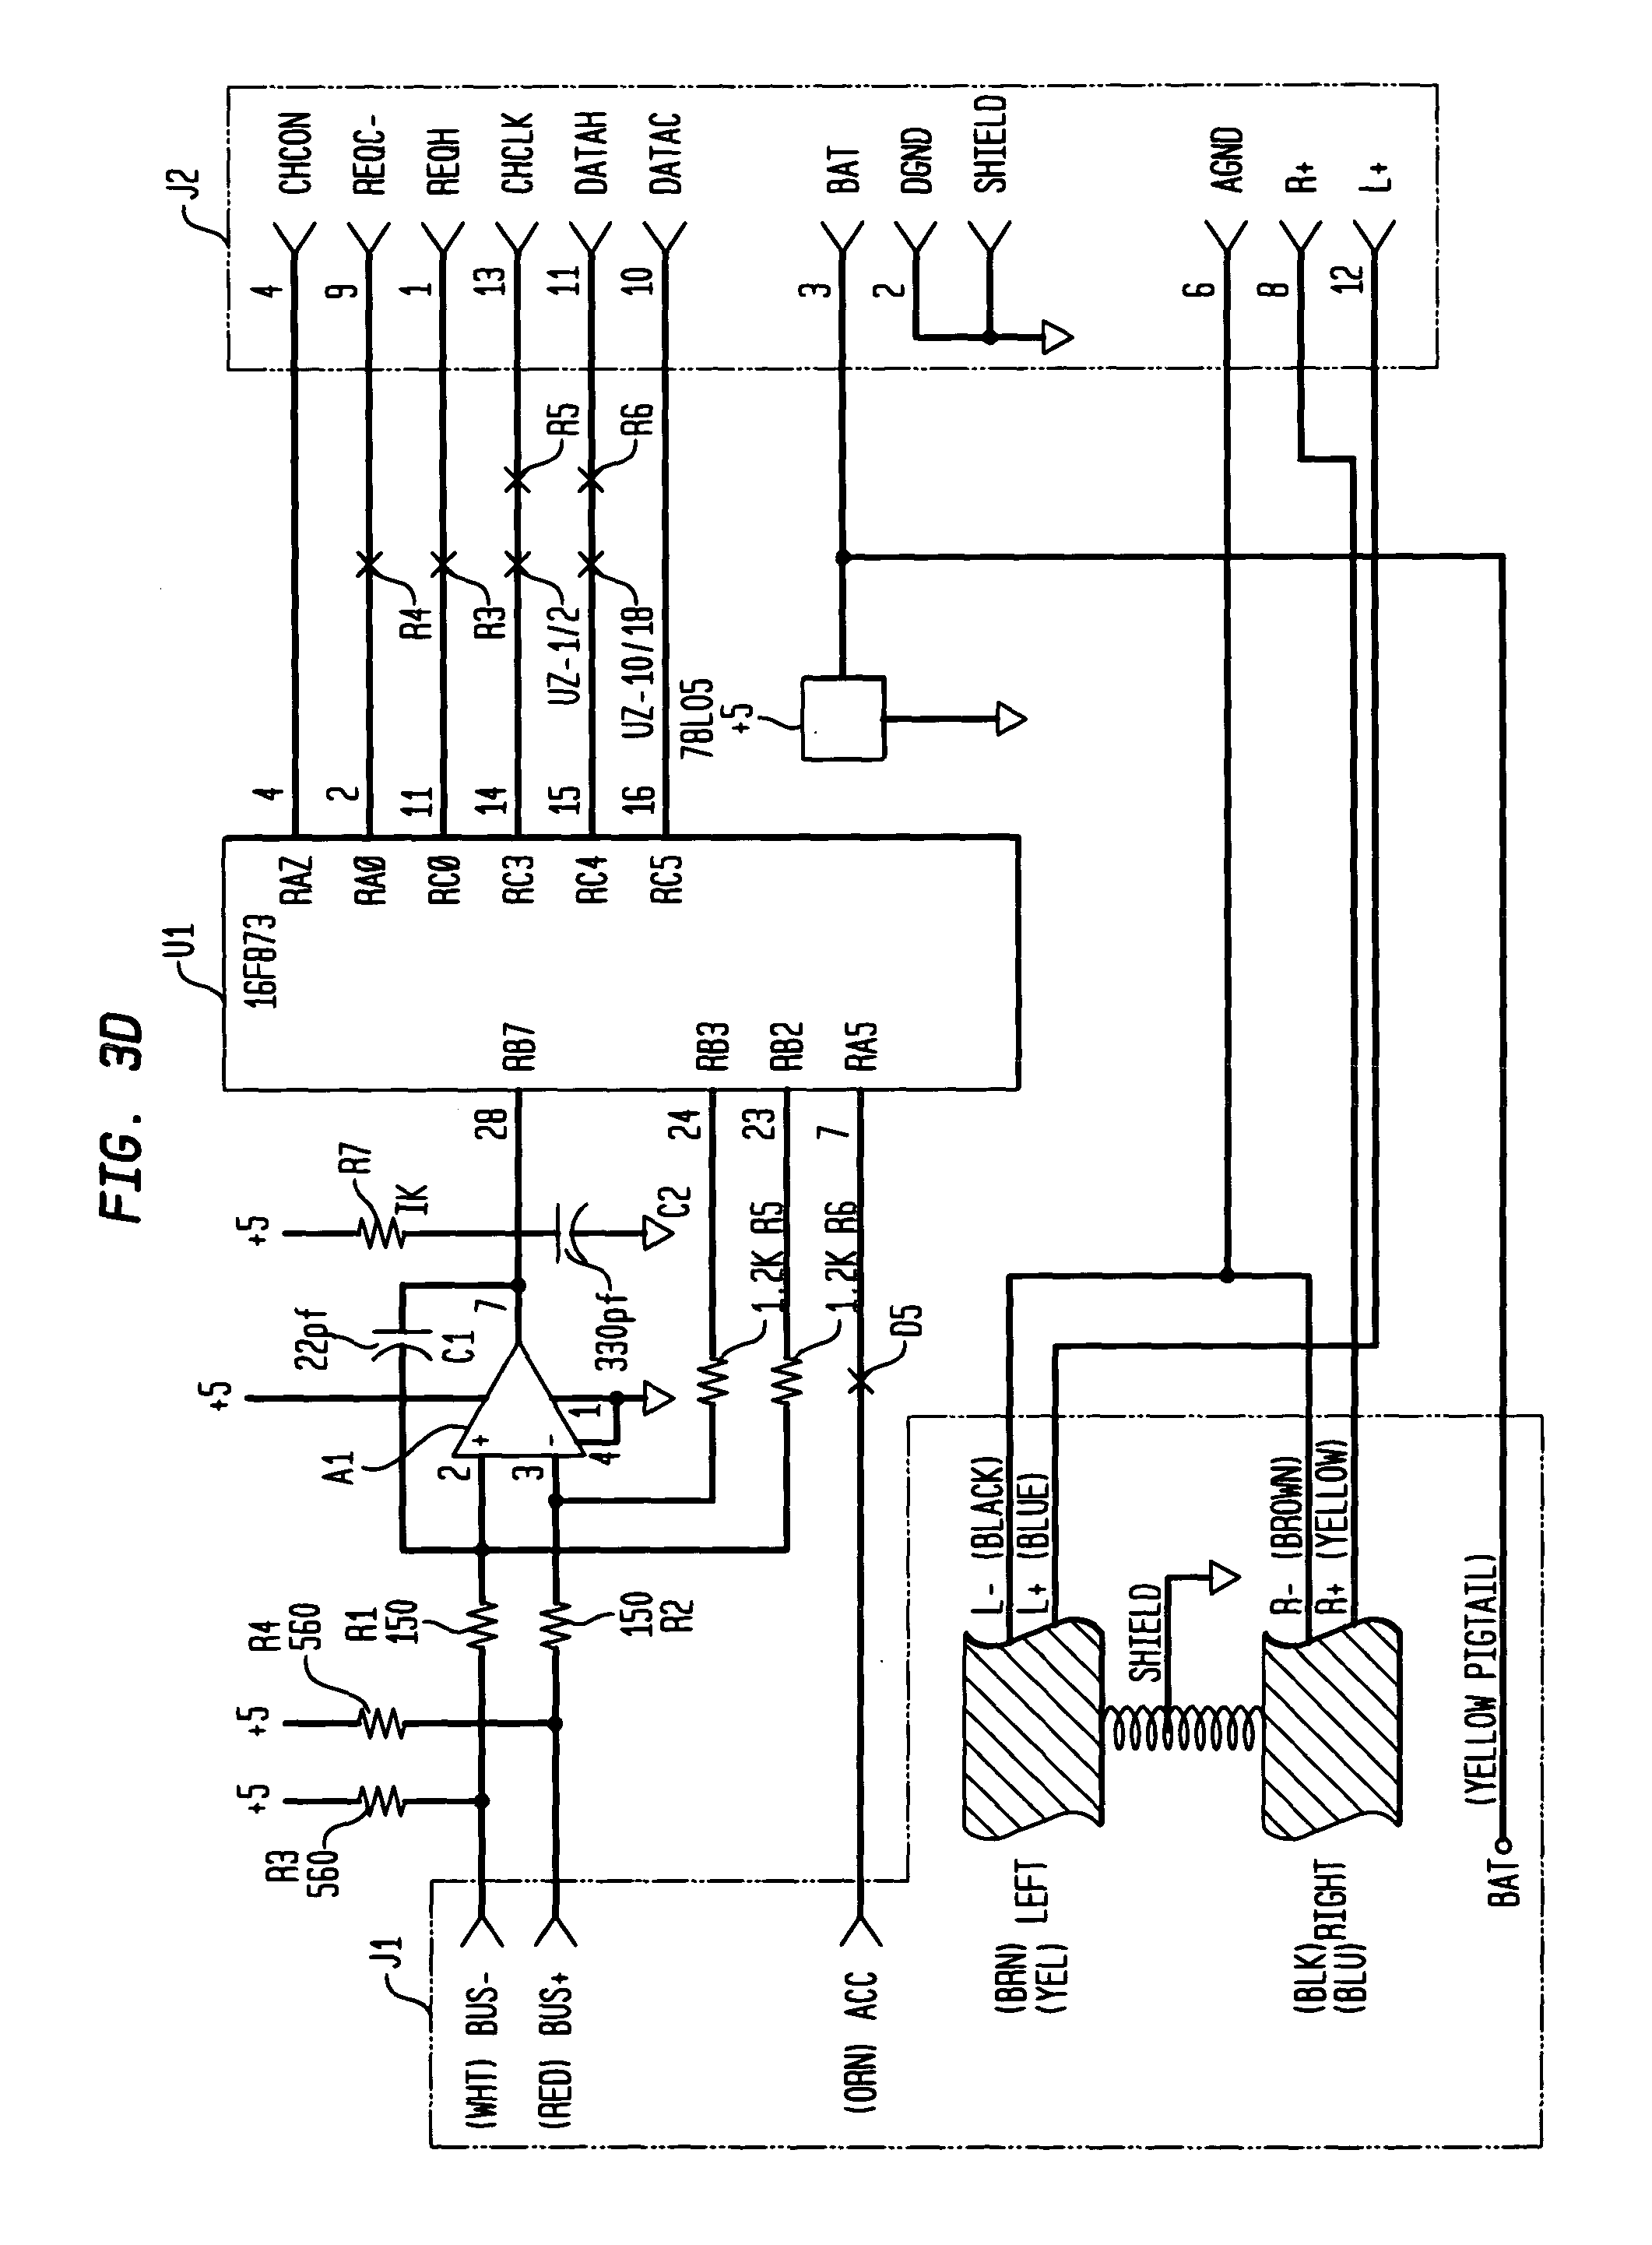 Sanyo Automedia Wiring Diagram Sirius,Automedia • Gsmportal.co